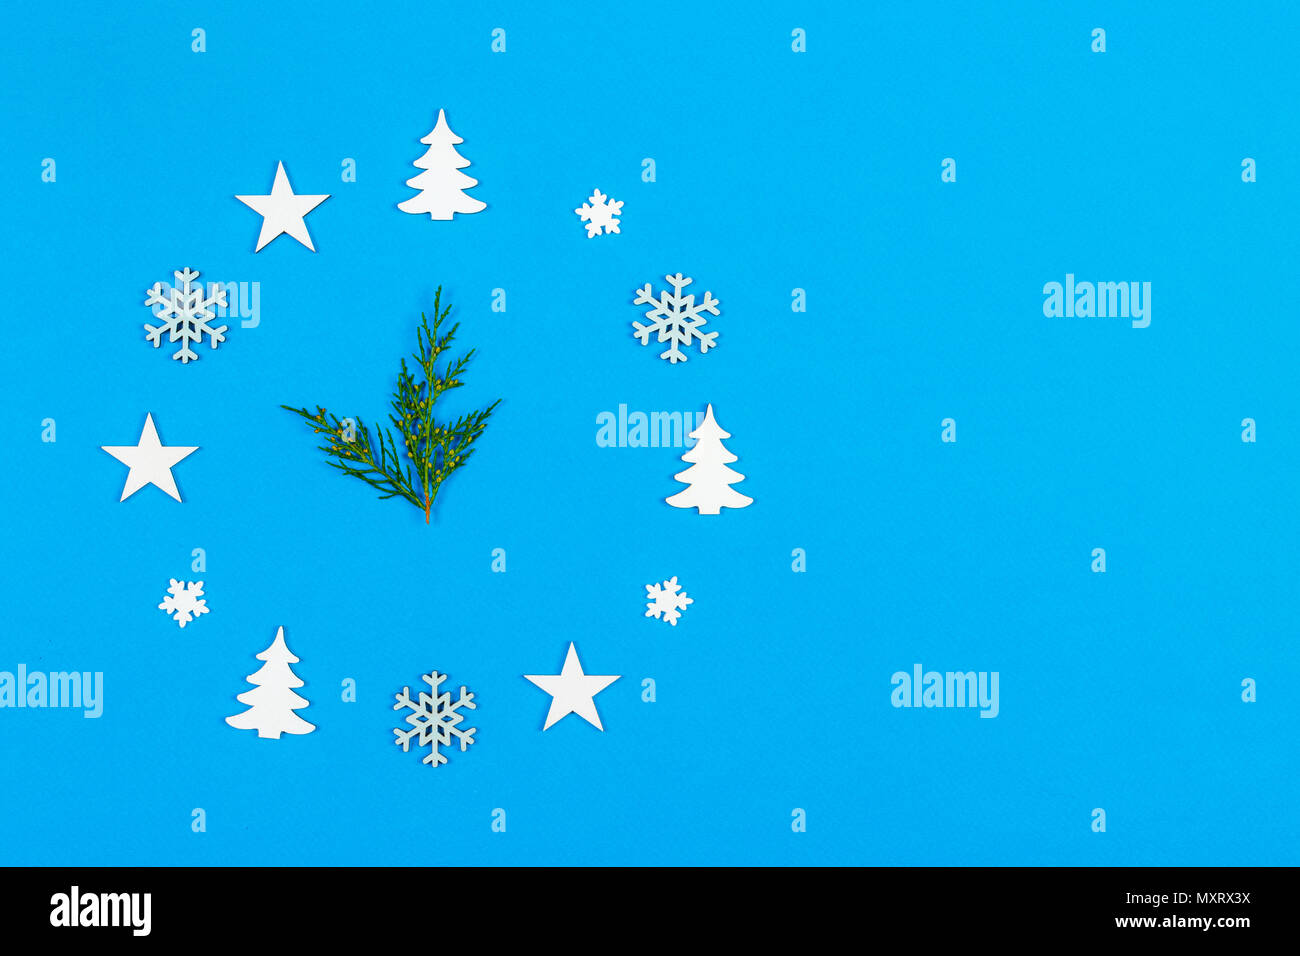 Concept clock made of christmas decoration showing five to midnight New Year on blue background with copy space. Stock Photo